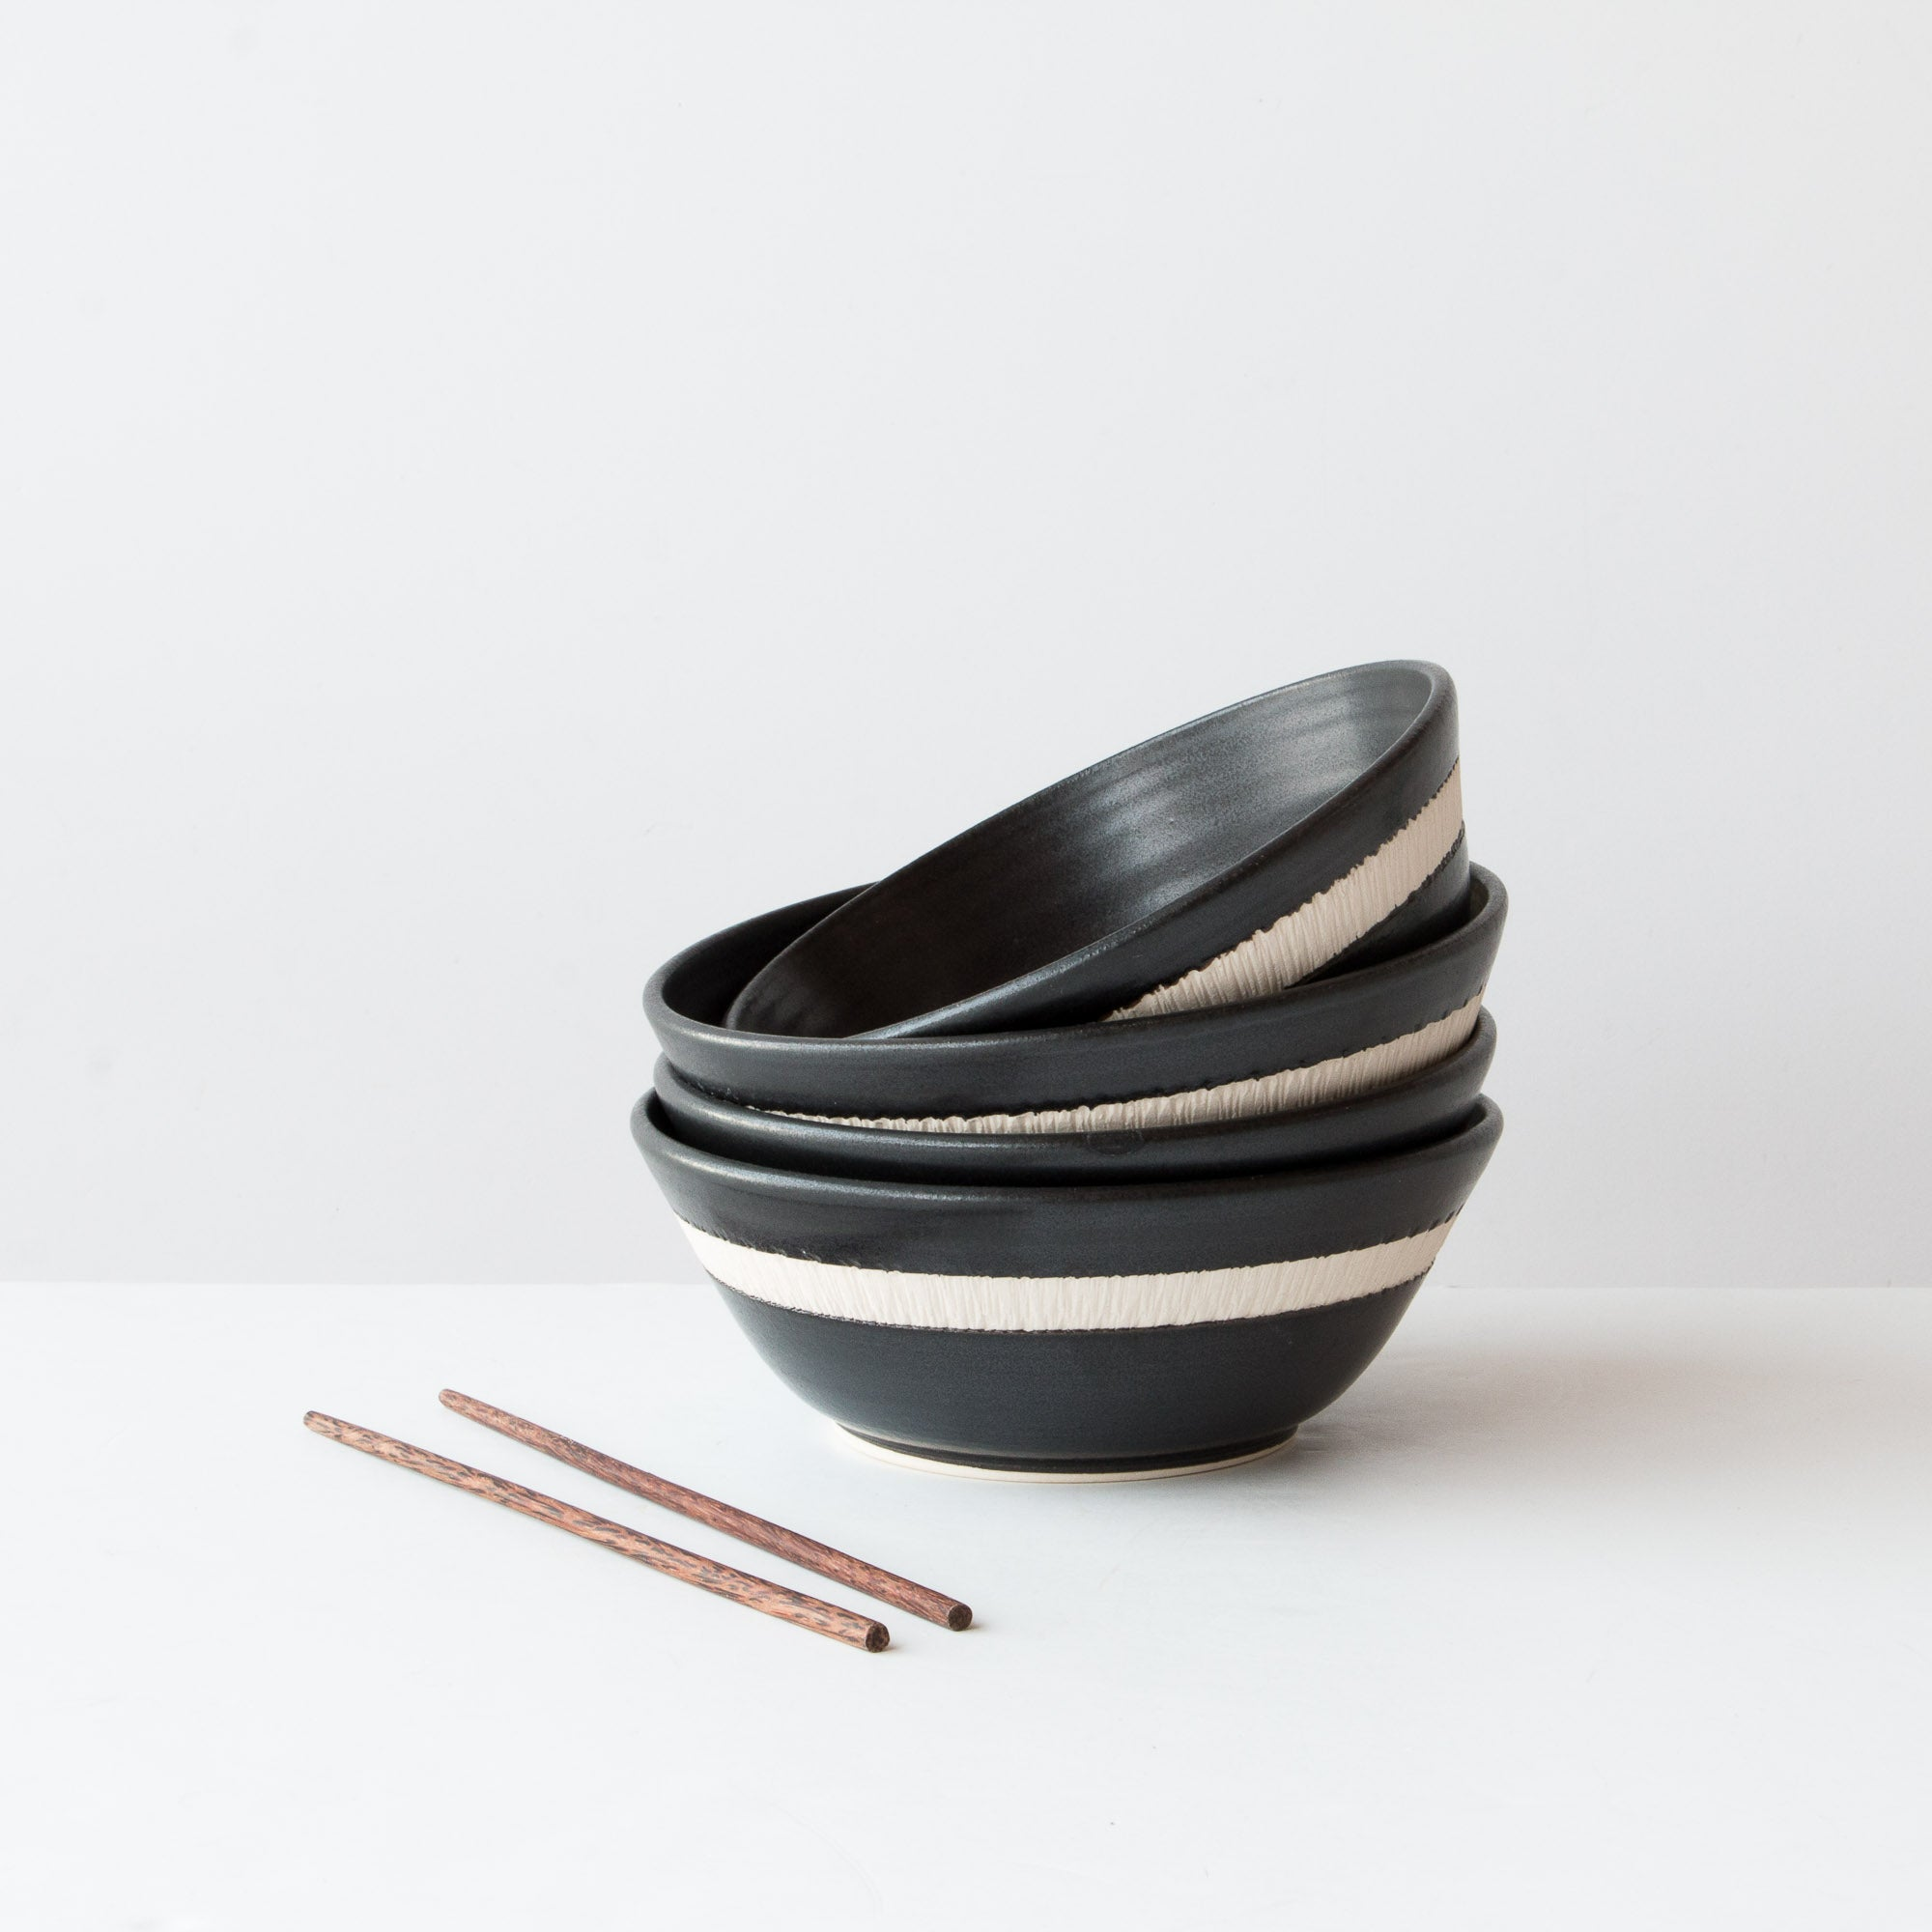 Handmade Ceramic Soup / Poke Bowl - Hand Thrown - Sold by Chic & Basta